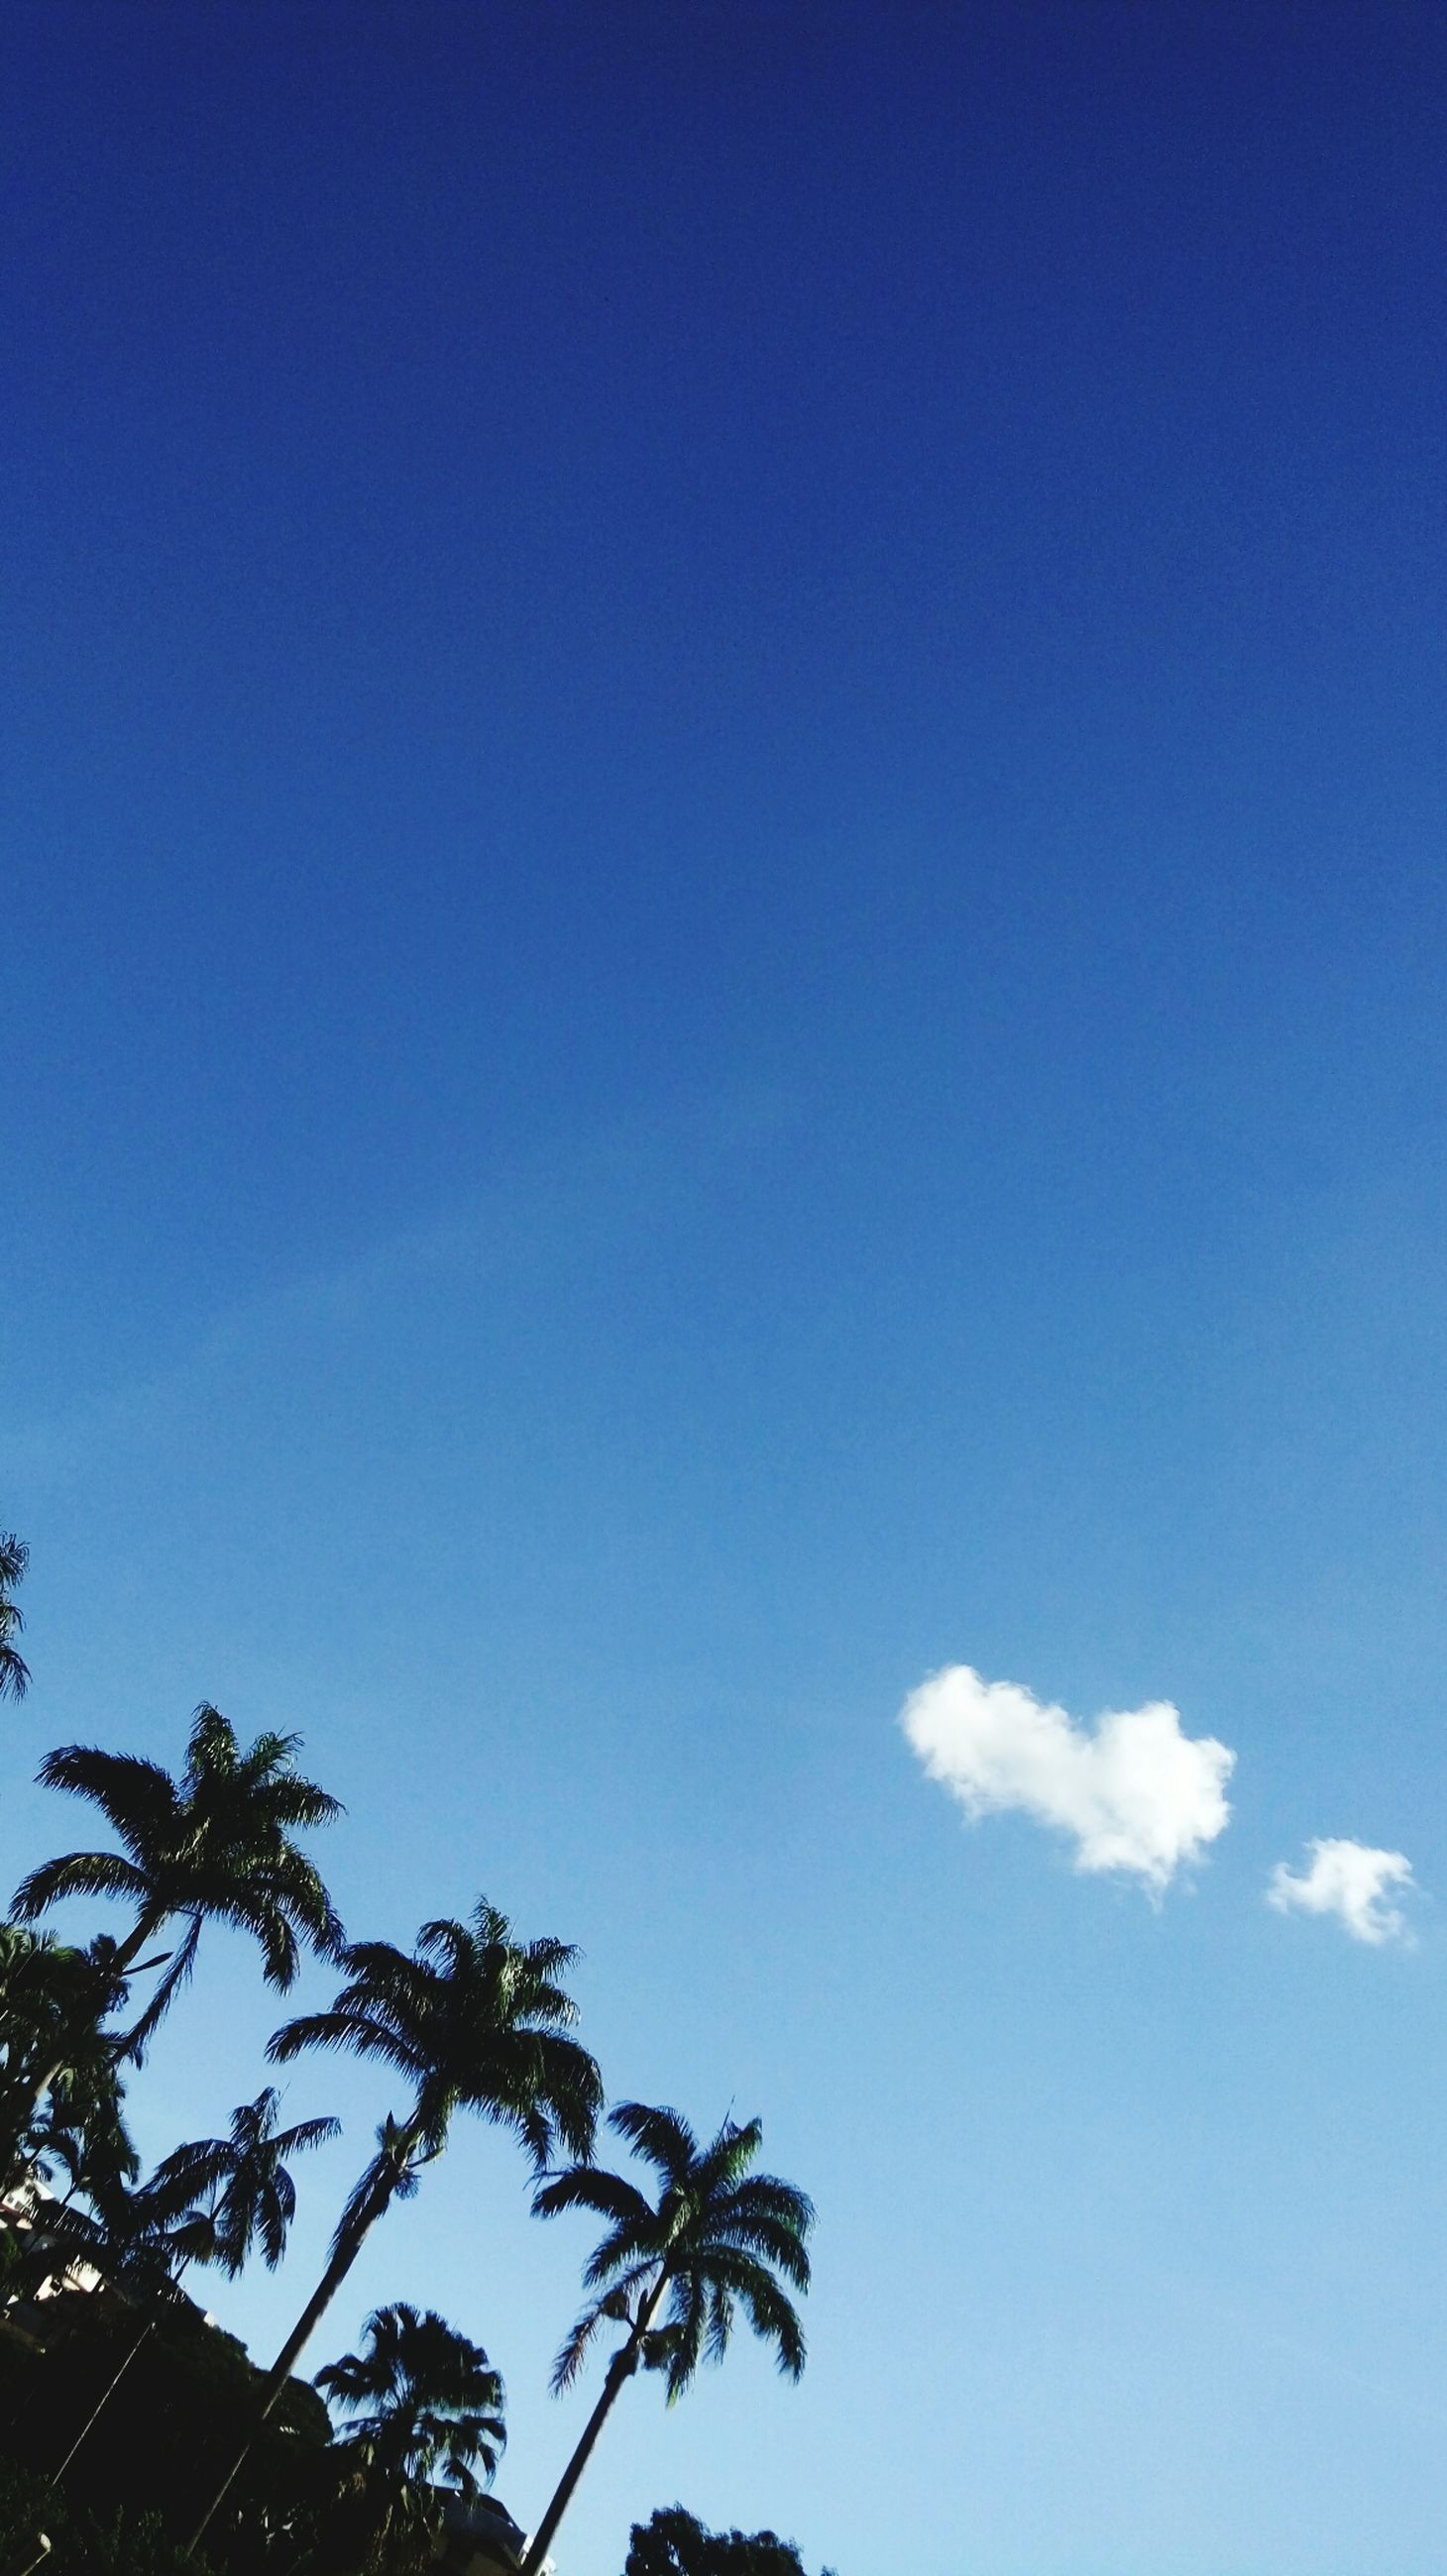 sky, tree, low angle view, blue, beauty in nature, cloud - sky, plant, tranquility, palm tree, day, nature, no people, tropical climate, scenics - nature, growth, tranquil scene, copy space, outdoors, sunlight, treetop, coconut palm tree, palm leaf